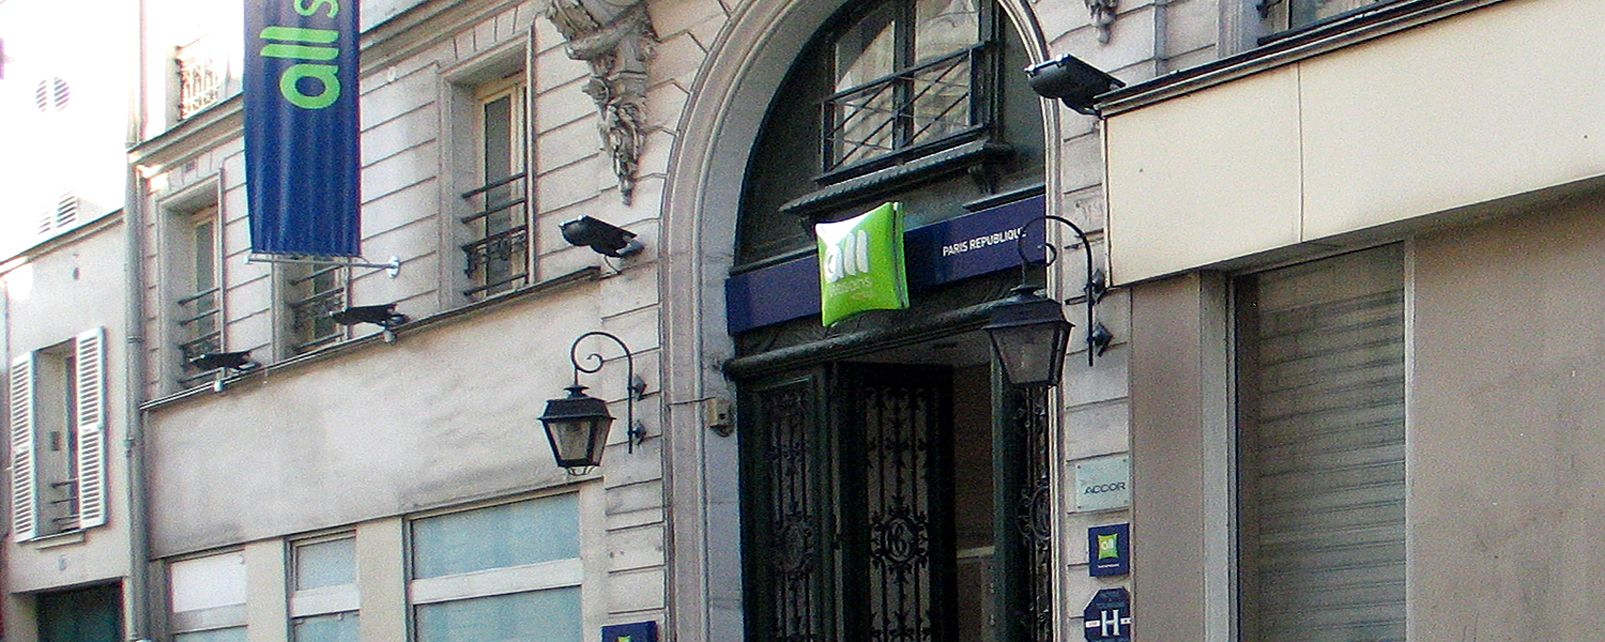 Hotel Holiday Inn Paris Republique